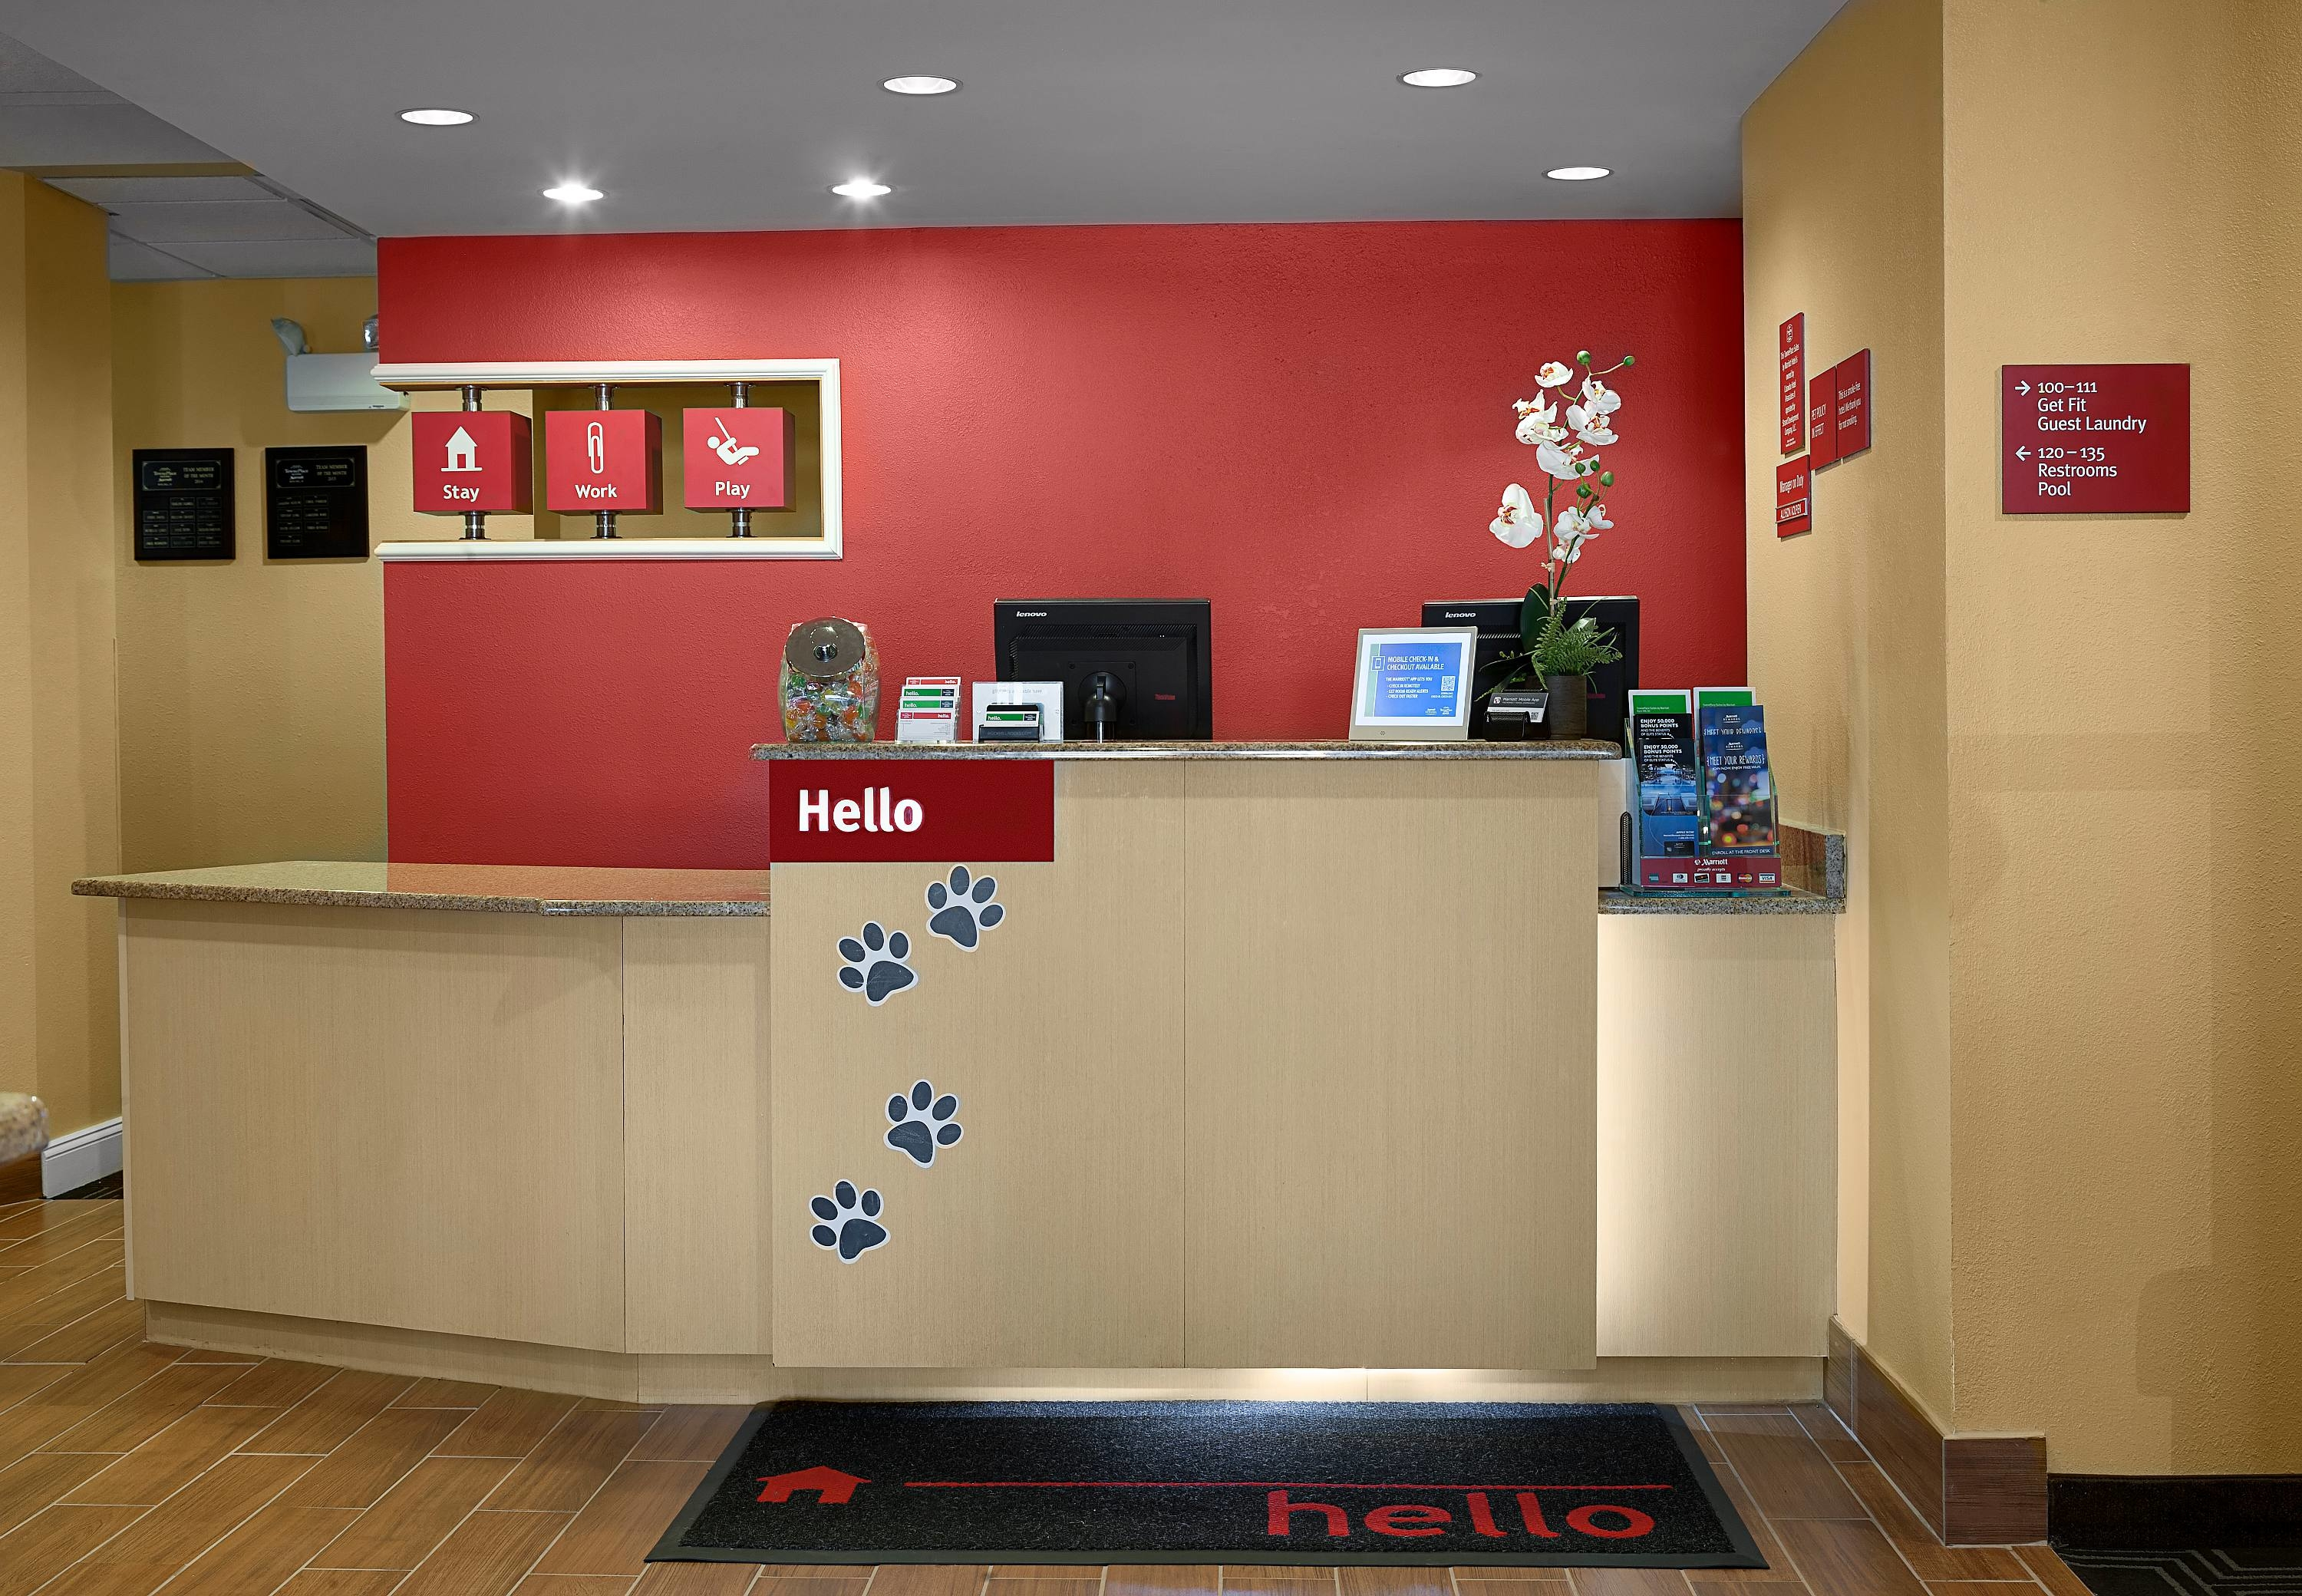 TownePlace Suites by Marriott Rock Hill image 1